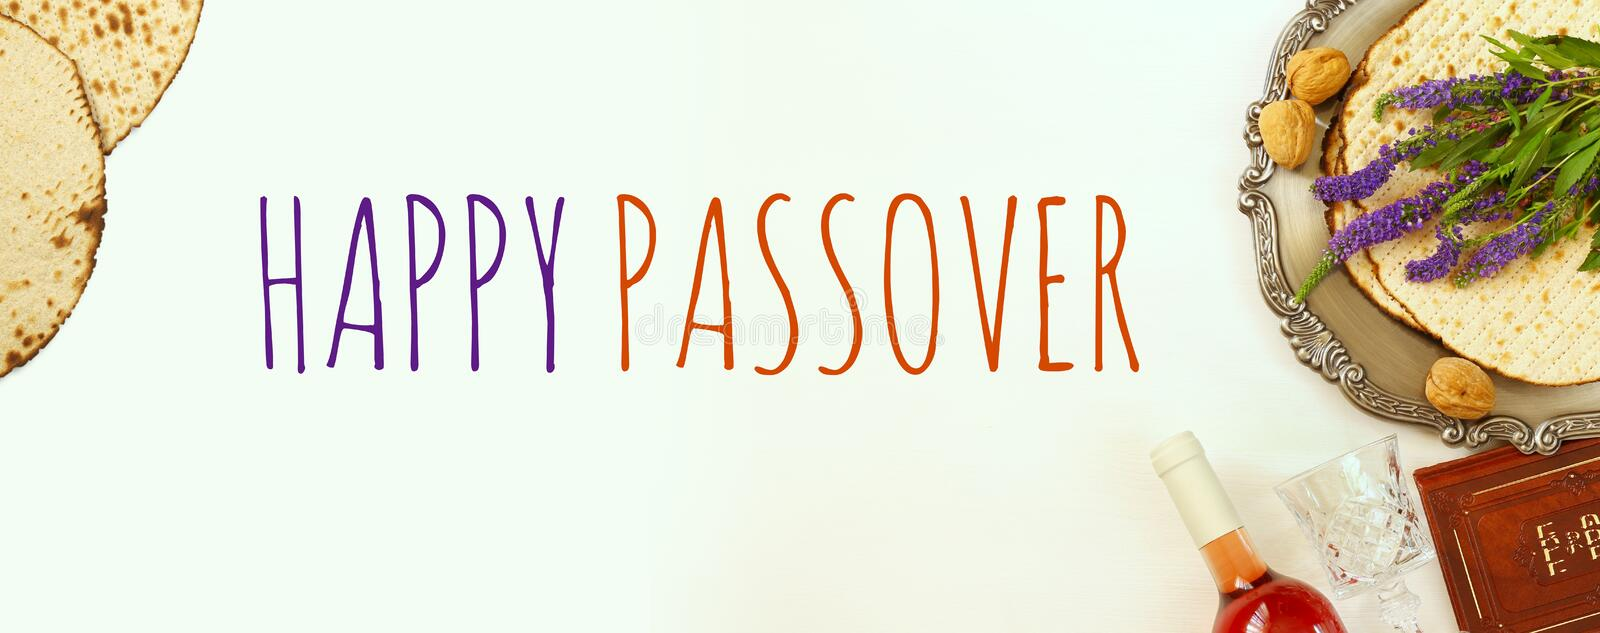 Pesah celebration concept & x28;jewish Passover holiday& x29;. Traditional book with text in hebrew: Passover Haggadah & x28;Passover Tale& x29;. Website royalty free stock images